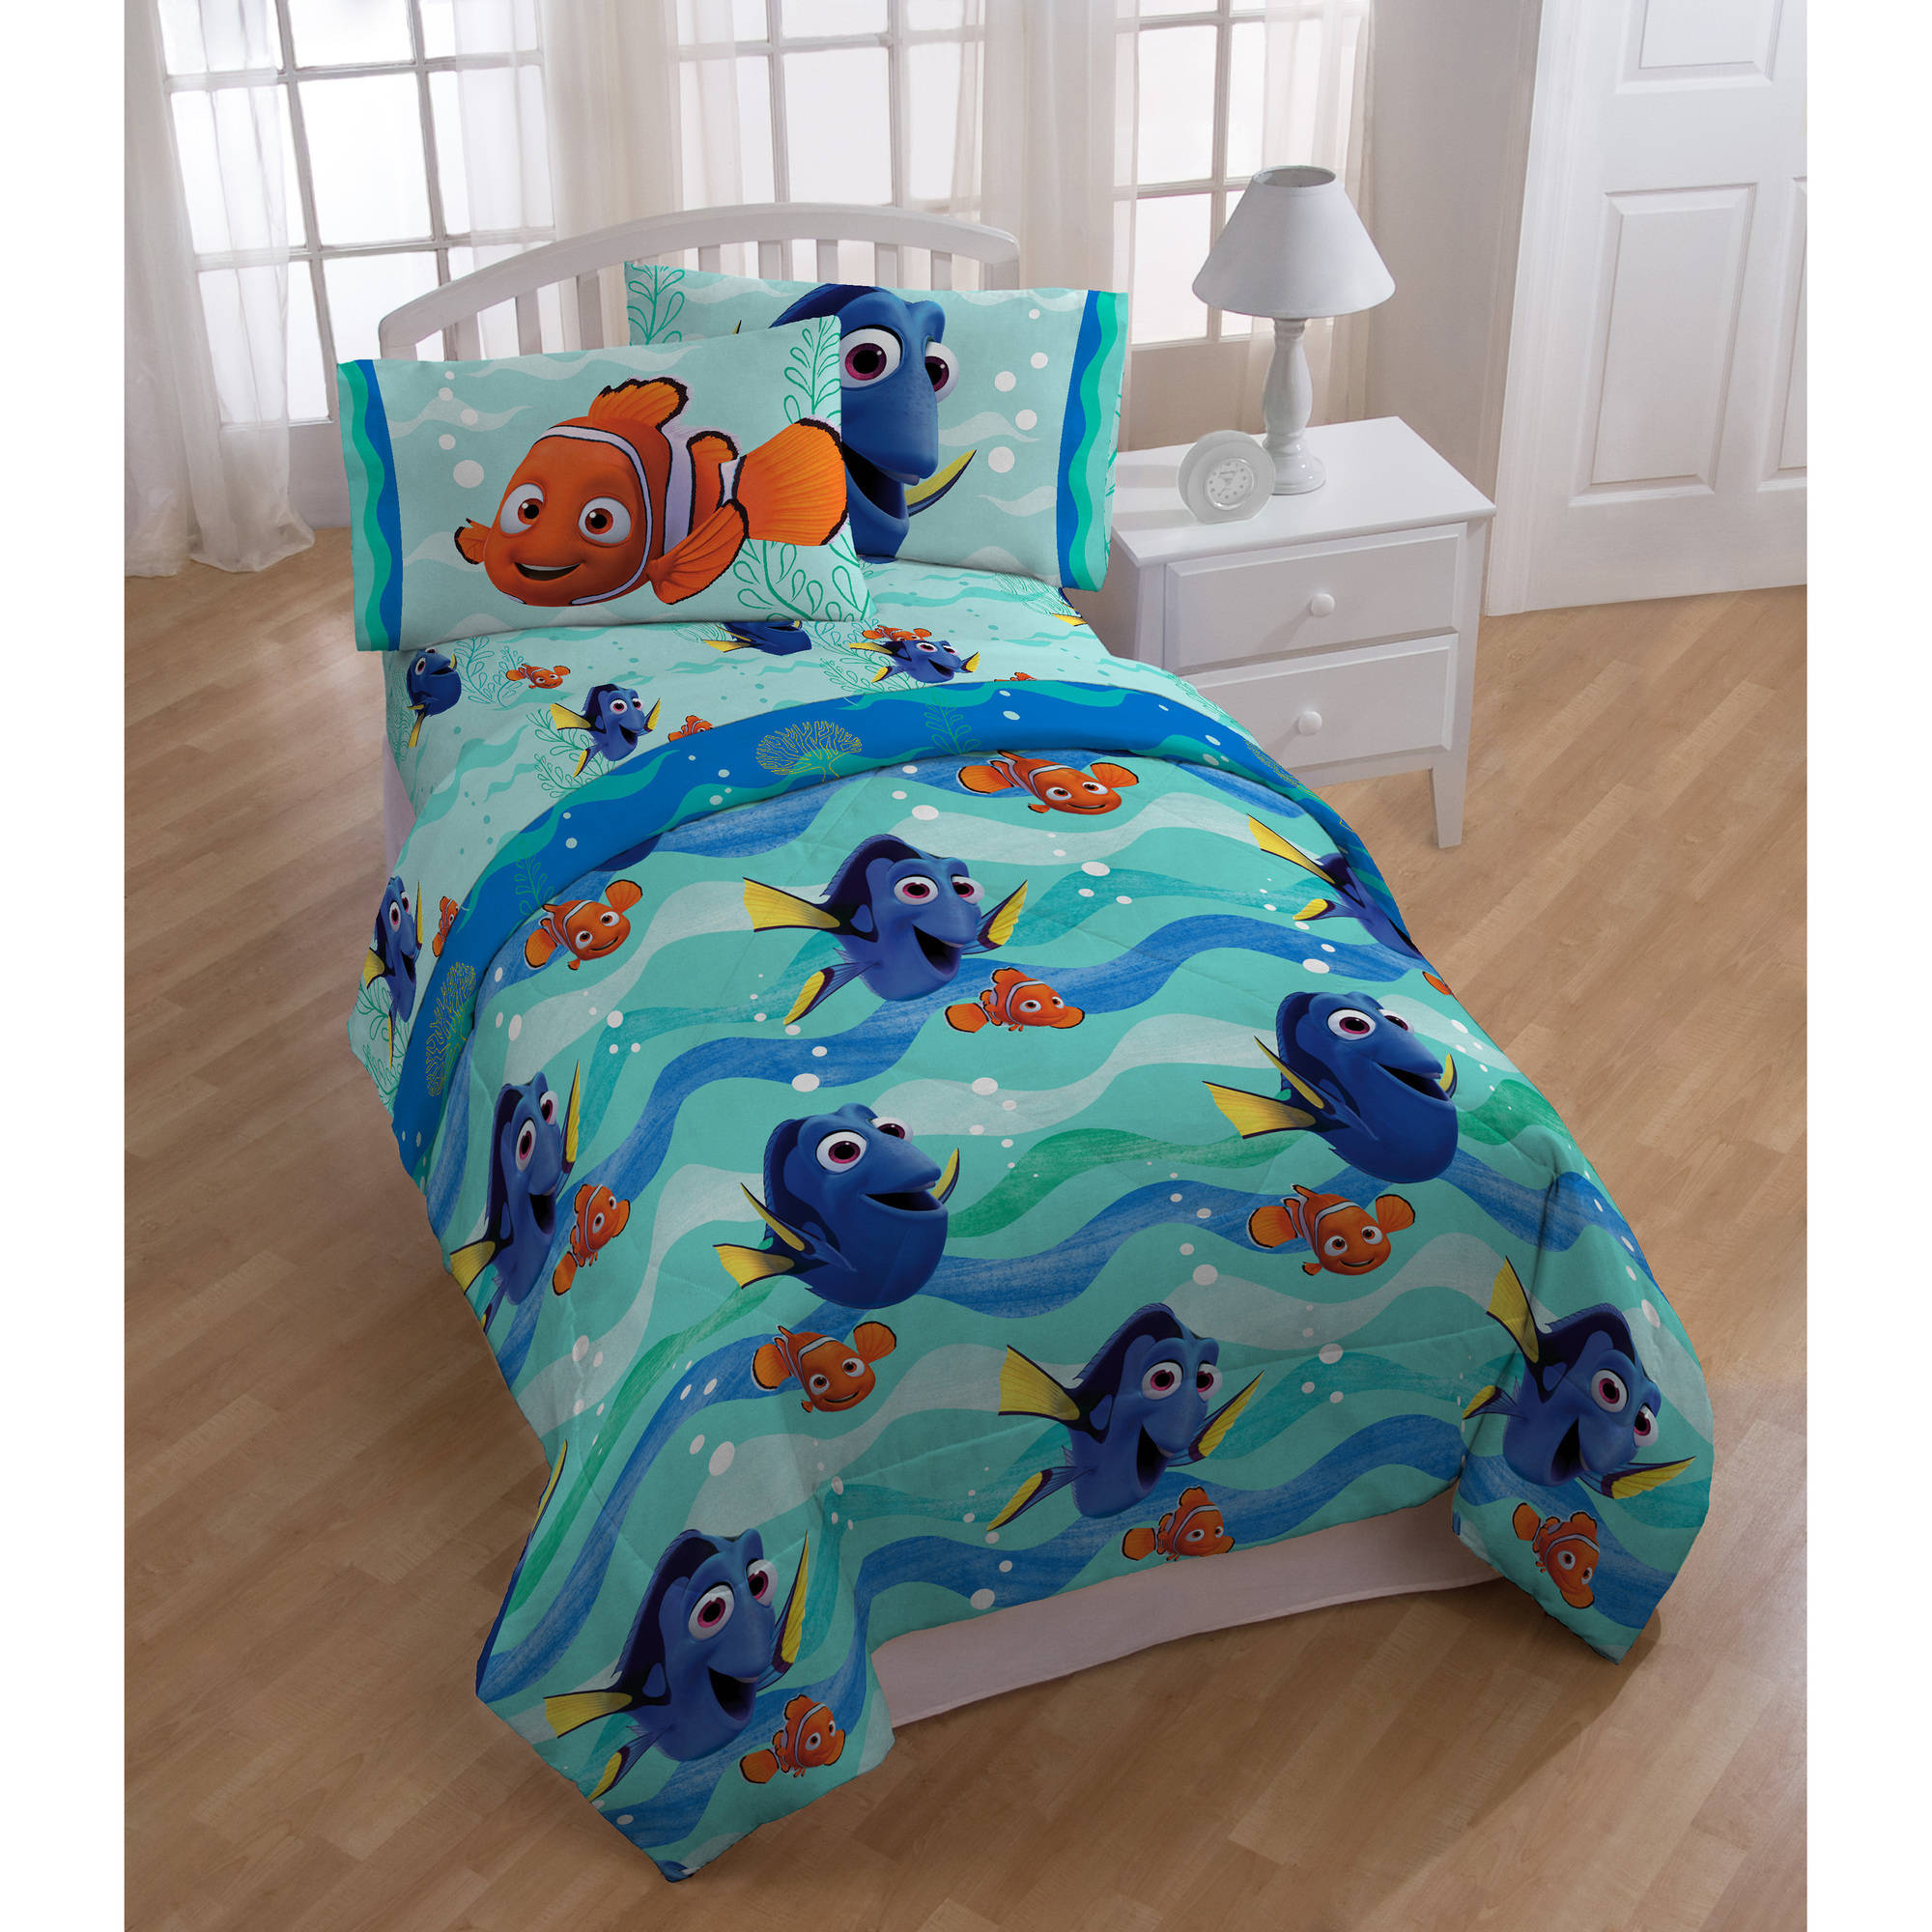 Disney Finding Dory Bed in a Bag 5 Piece Twin Bedding Set with BONUS Tote. Kids  Bedding   Walmart com